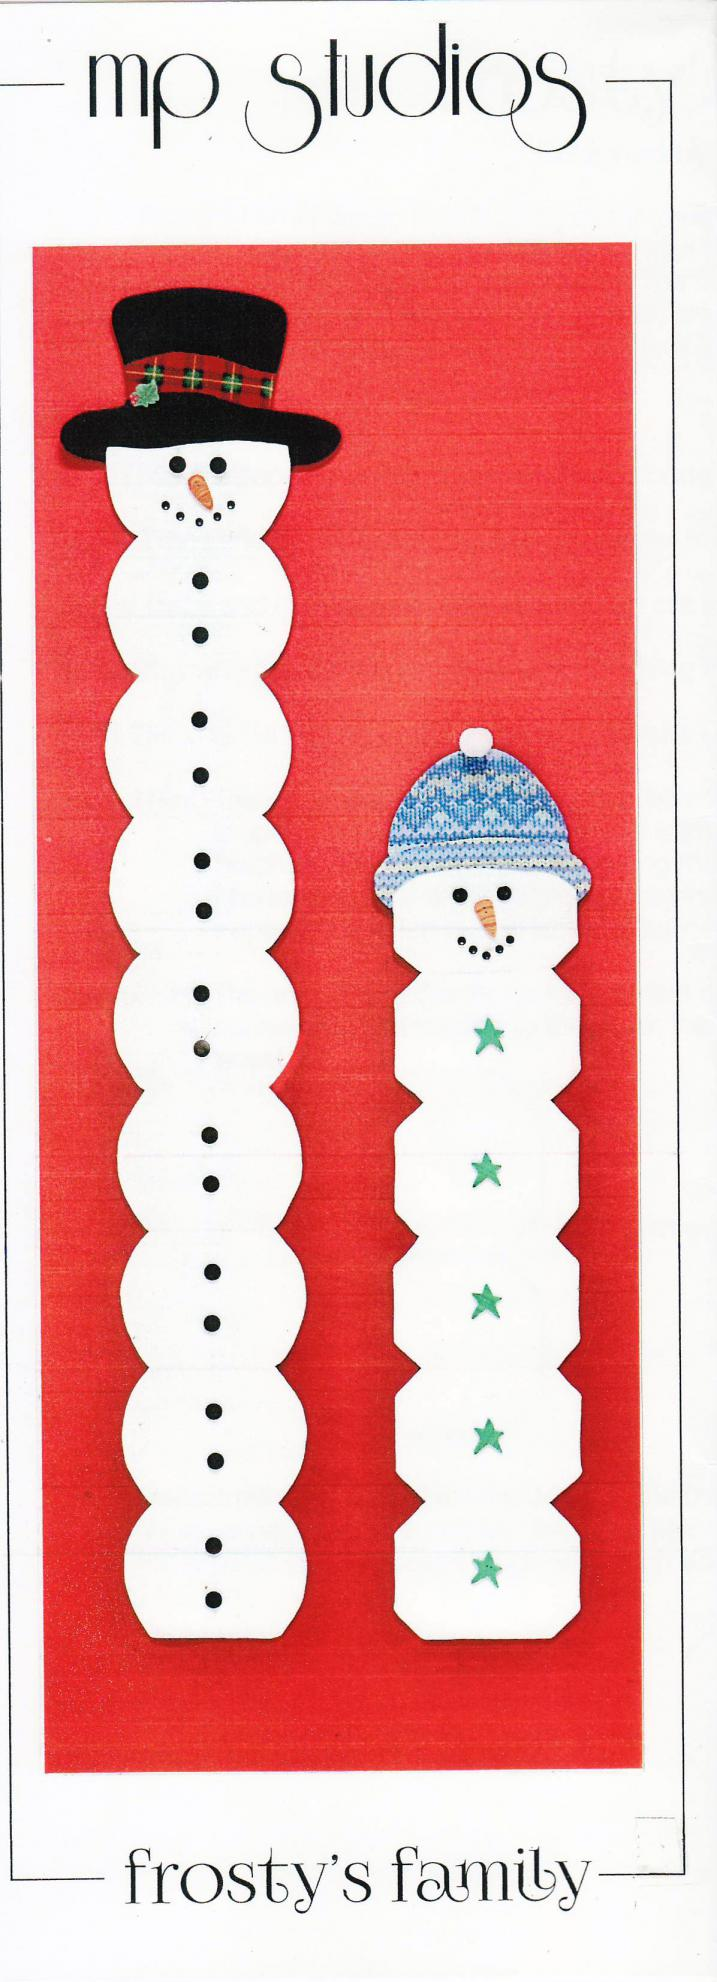 Frosty's Family wall hanging sewing pattern from Material Possessions Studios